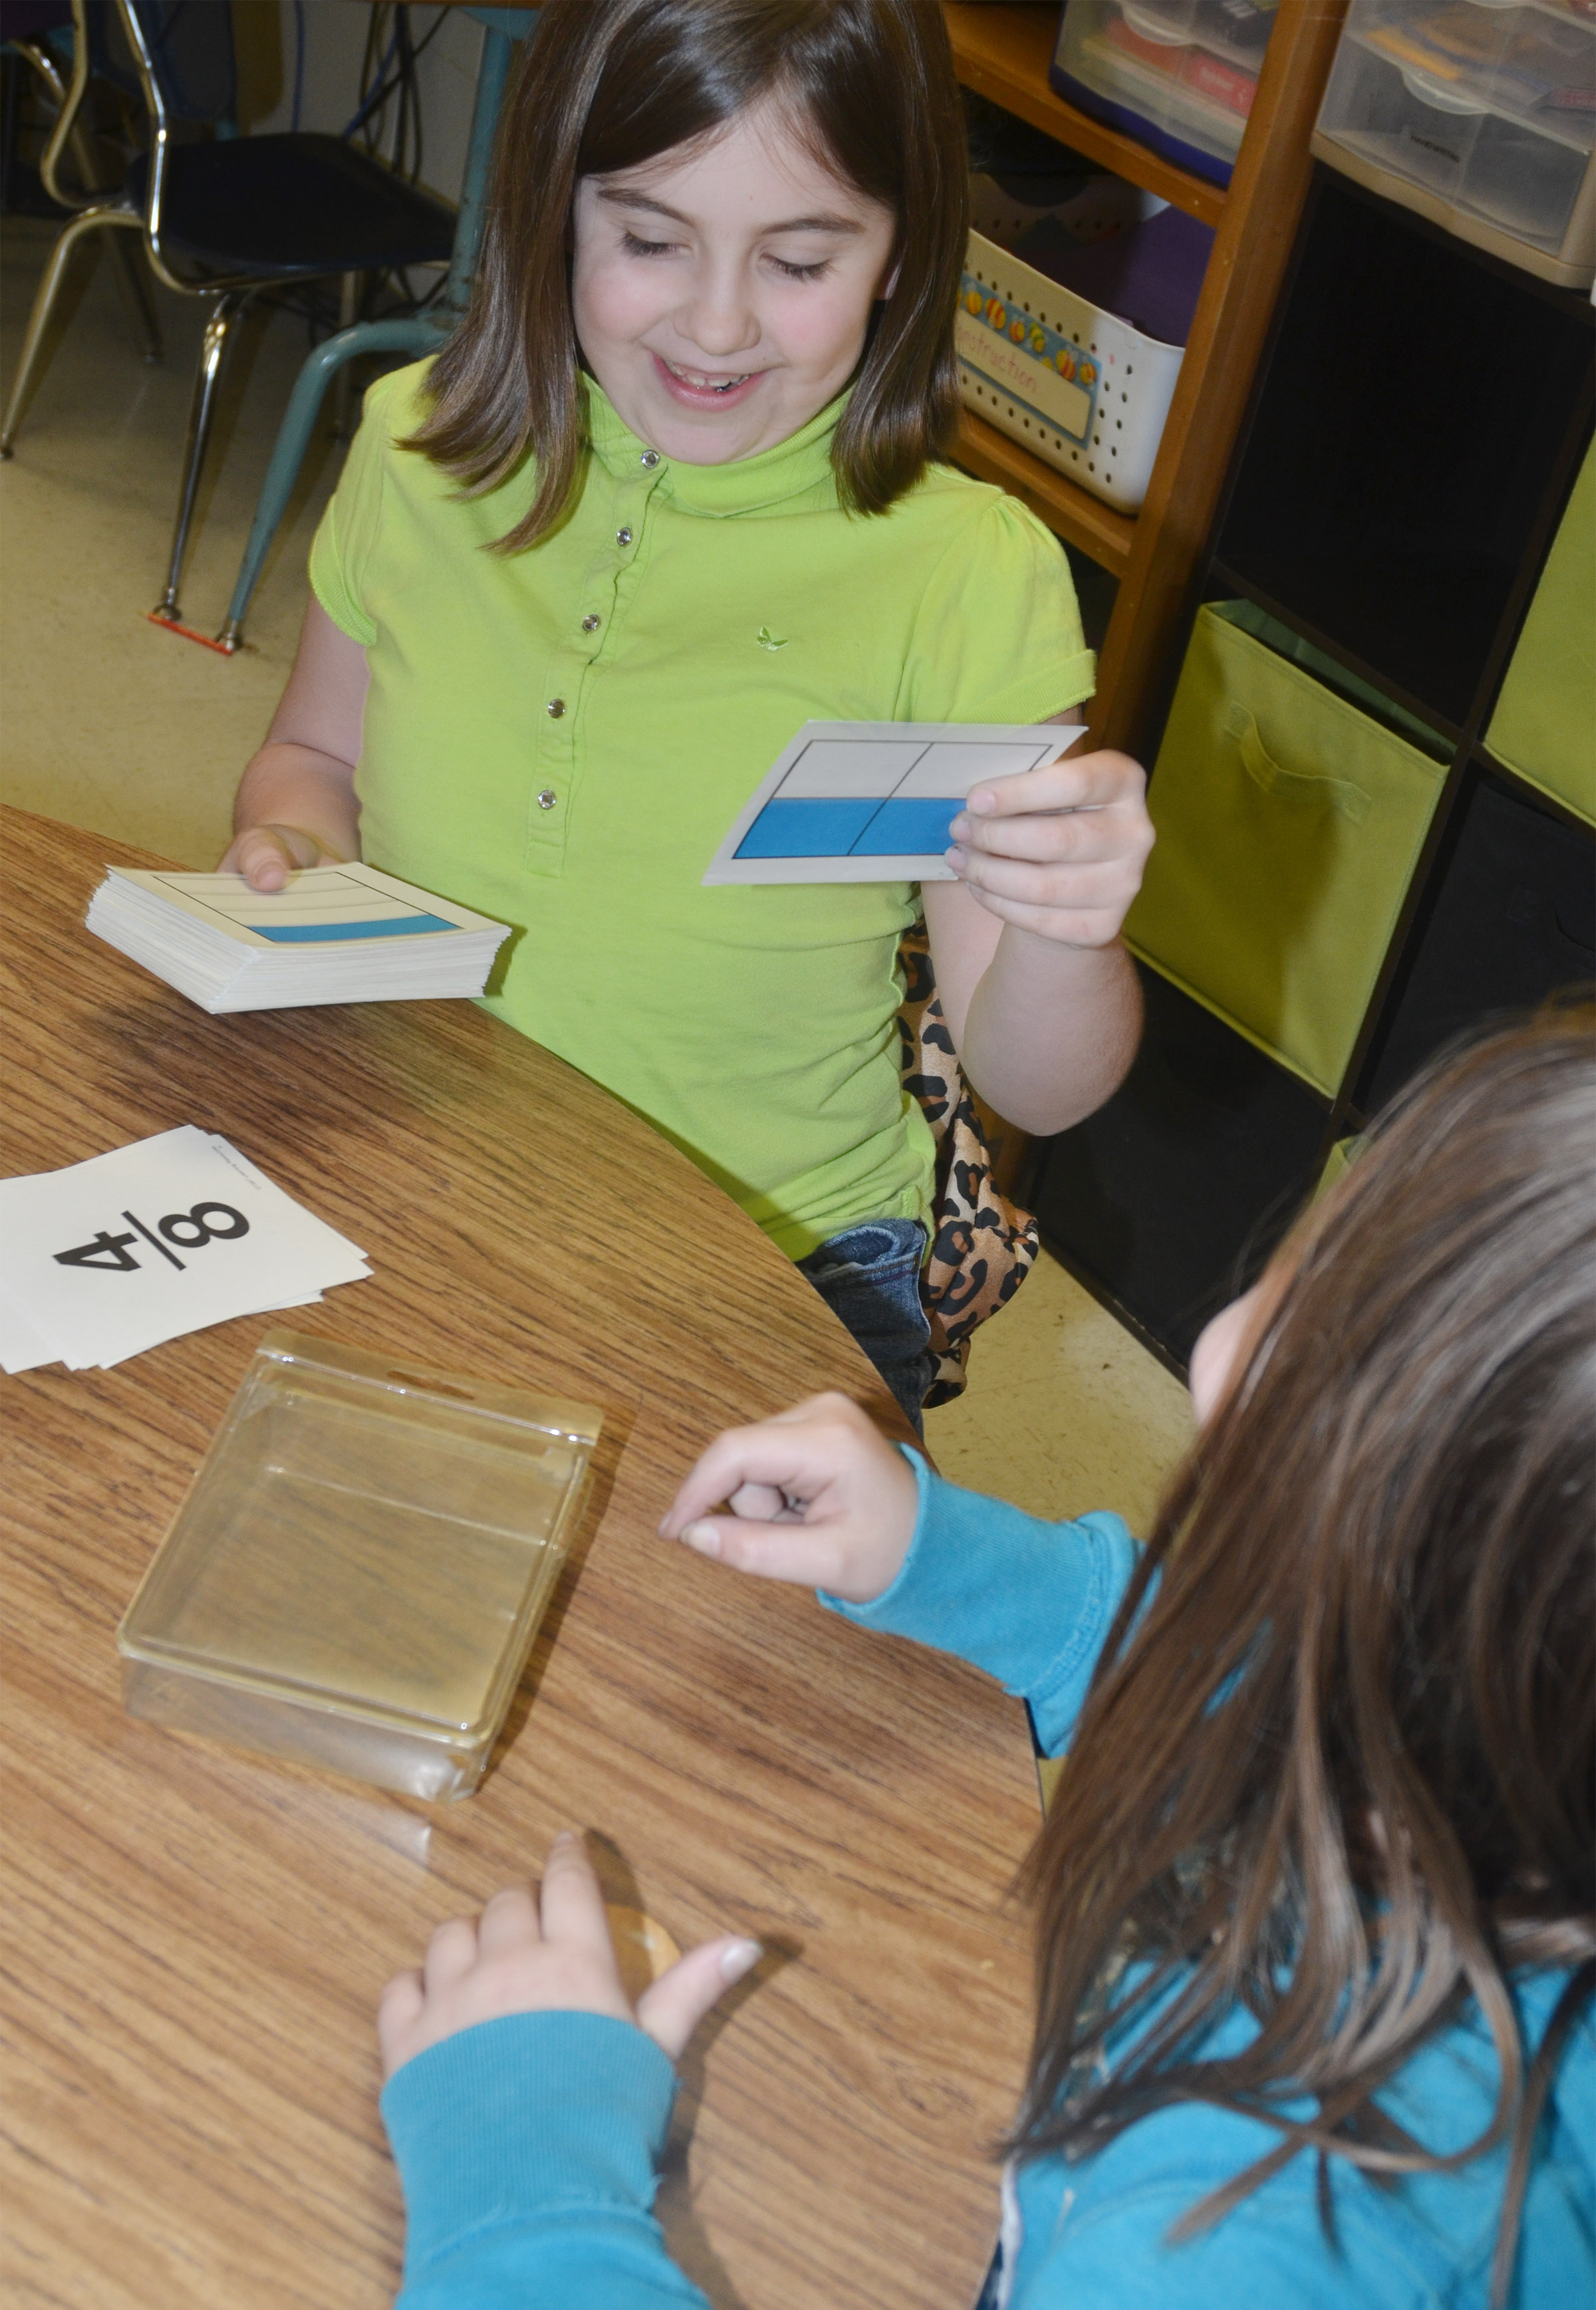 CES third-graders Adrianna Garvin, at left, plays a flashcard game with Chloe Bates to study fractions.